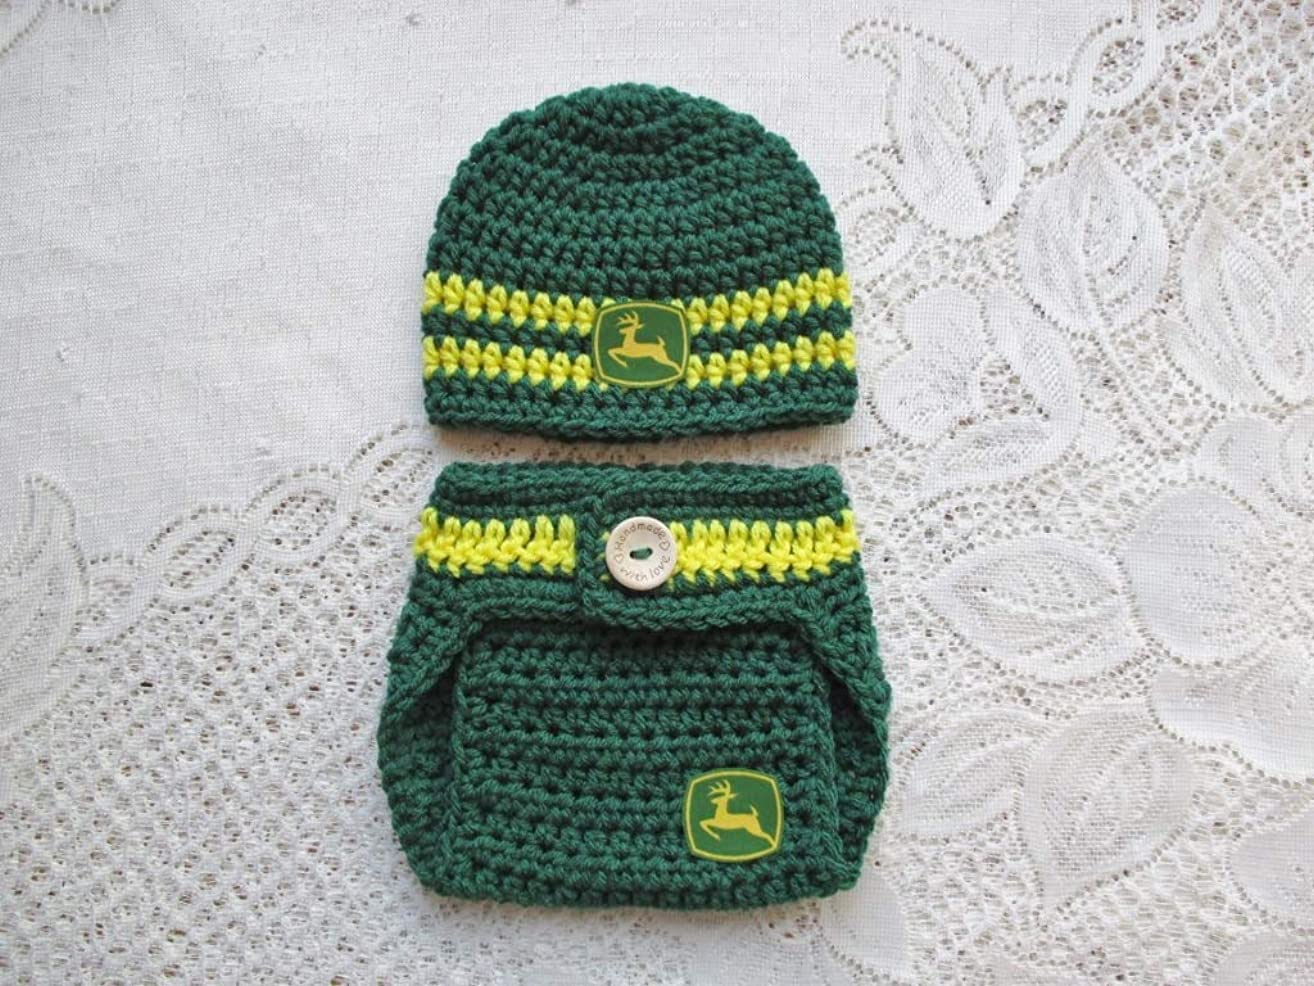 Crochet Baby John Deere Hat and Diaper Cover Set - Baby Photo Prop - Baby Shower Gift - Available in 0 to 6 Months